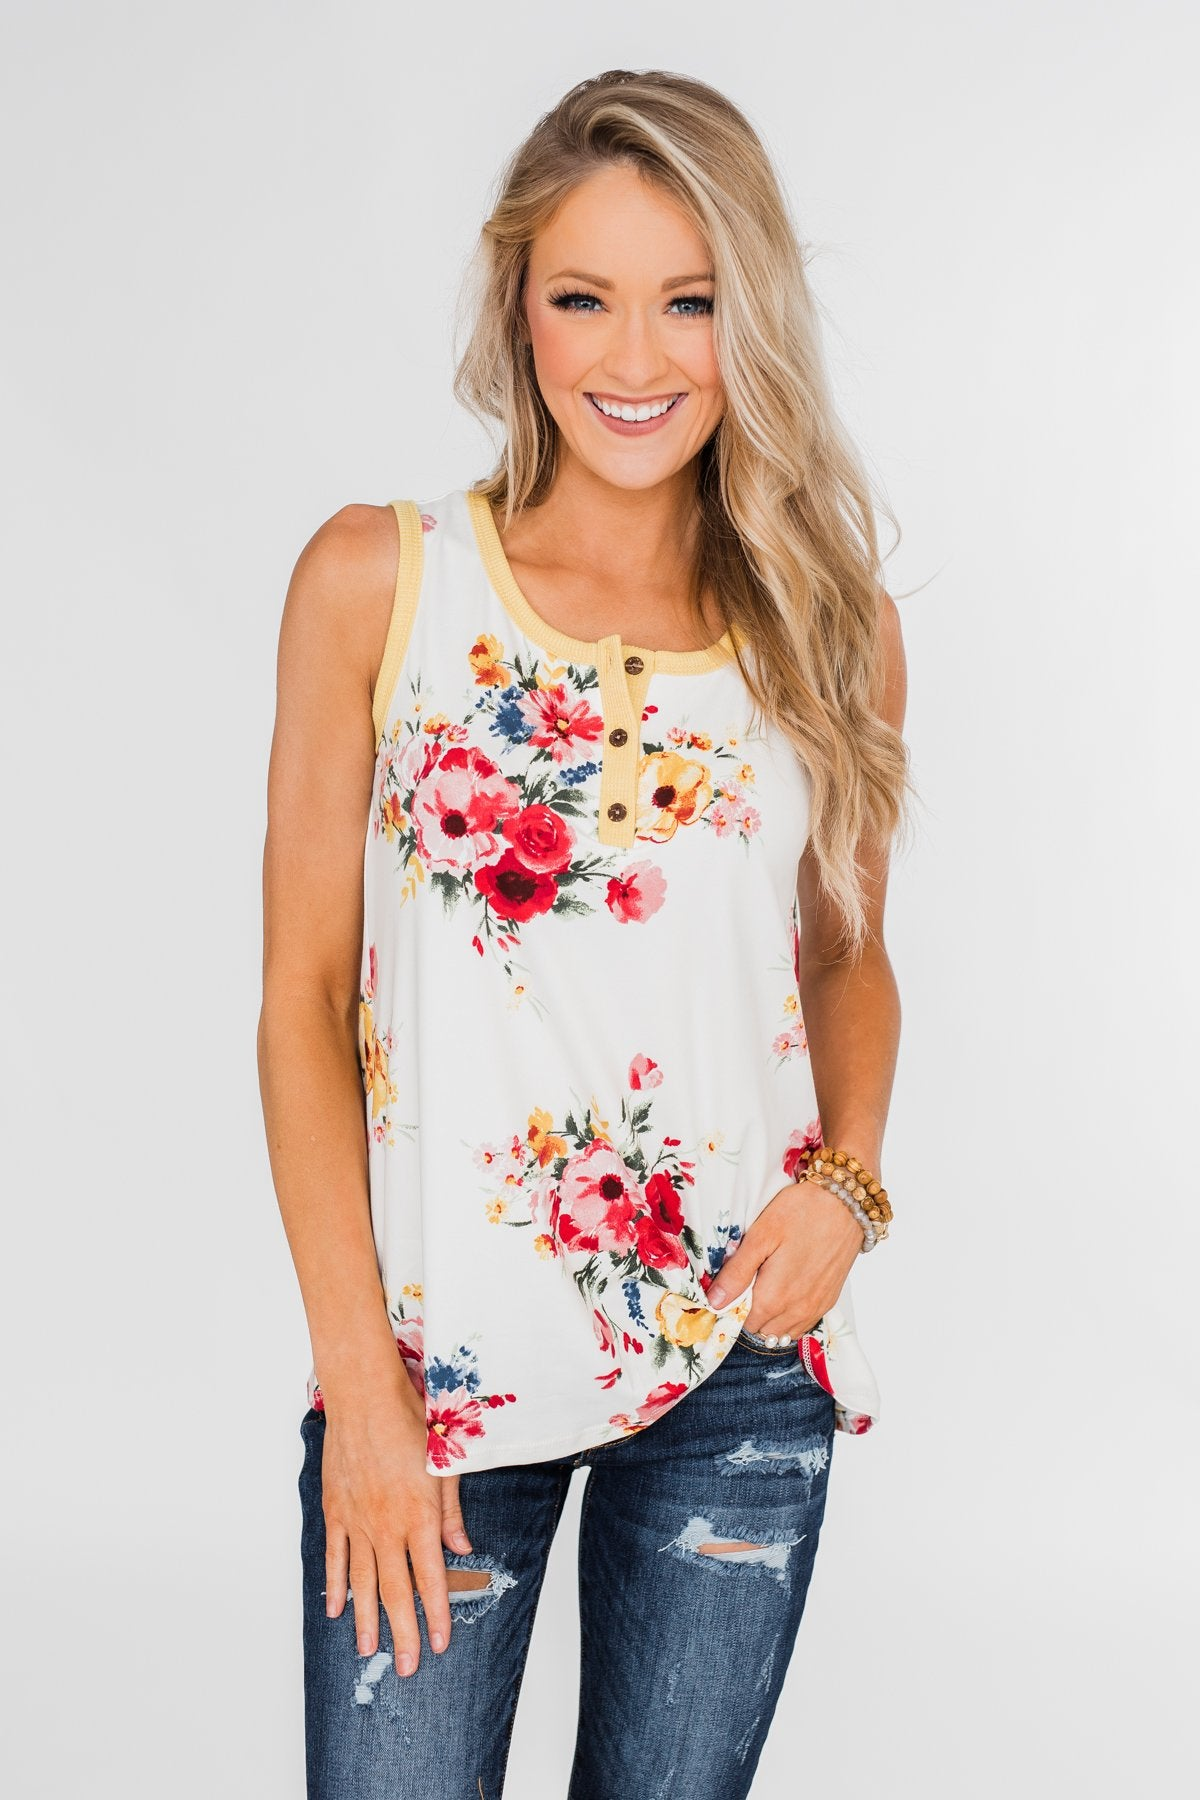 The Life I'm Living Floral Tank Top- Yellow